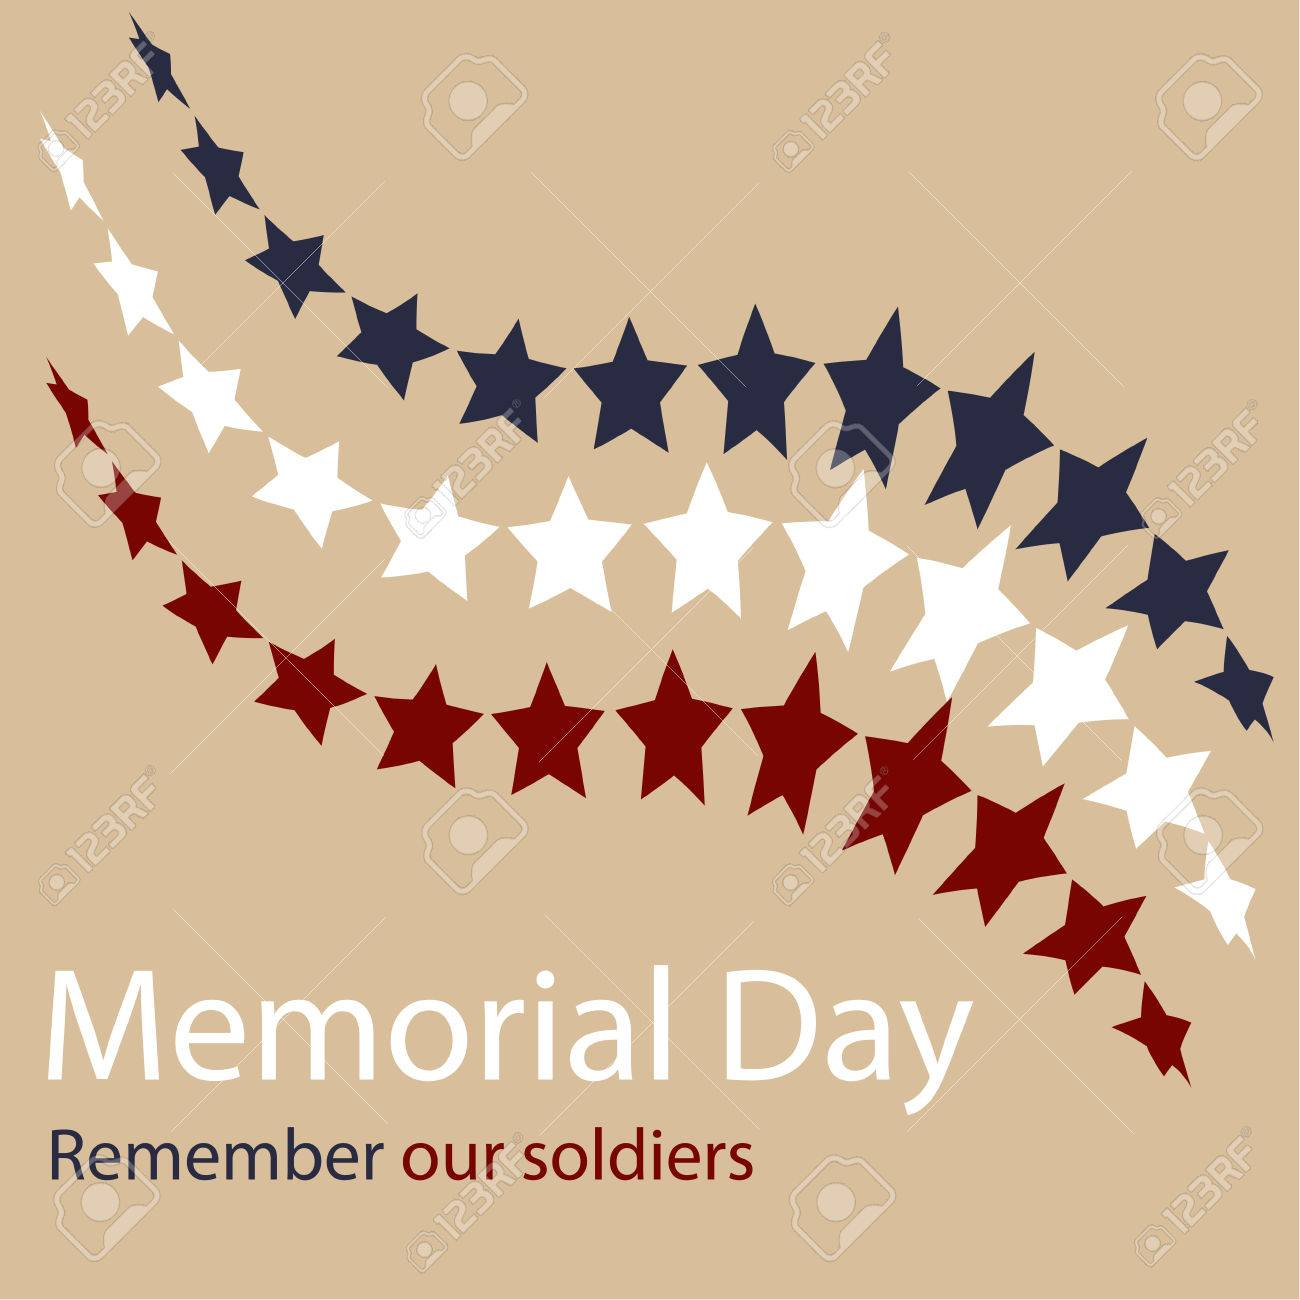 Colored background with text and elements for memorial day. Vector illustration - 39720642